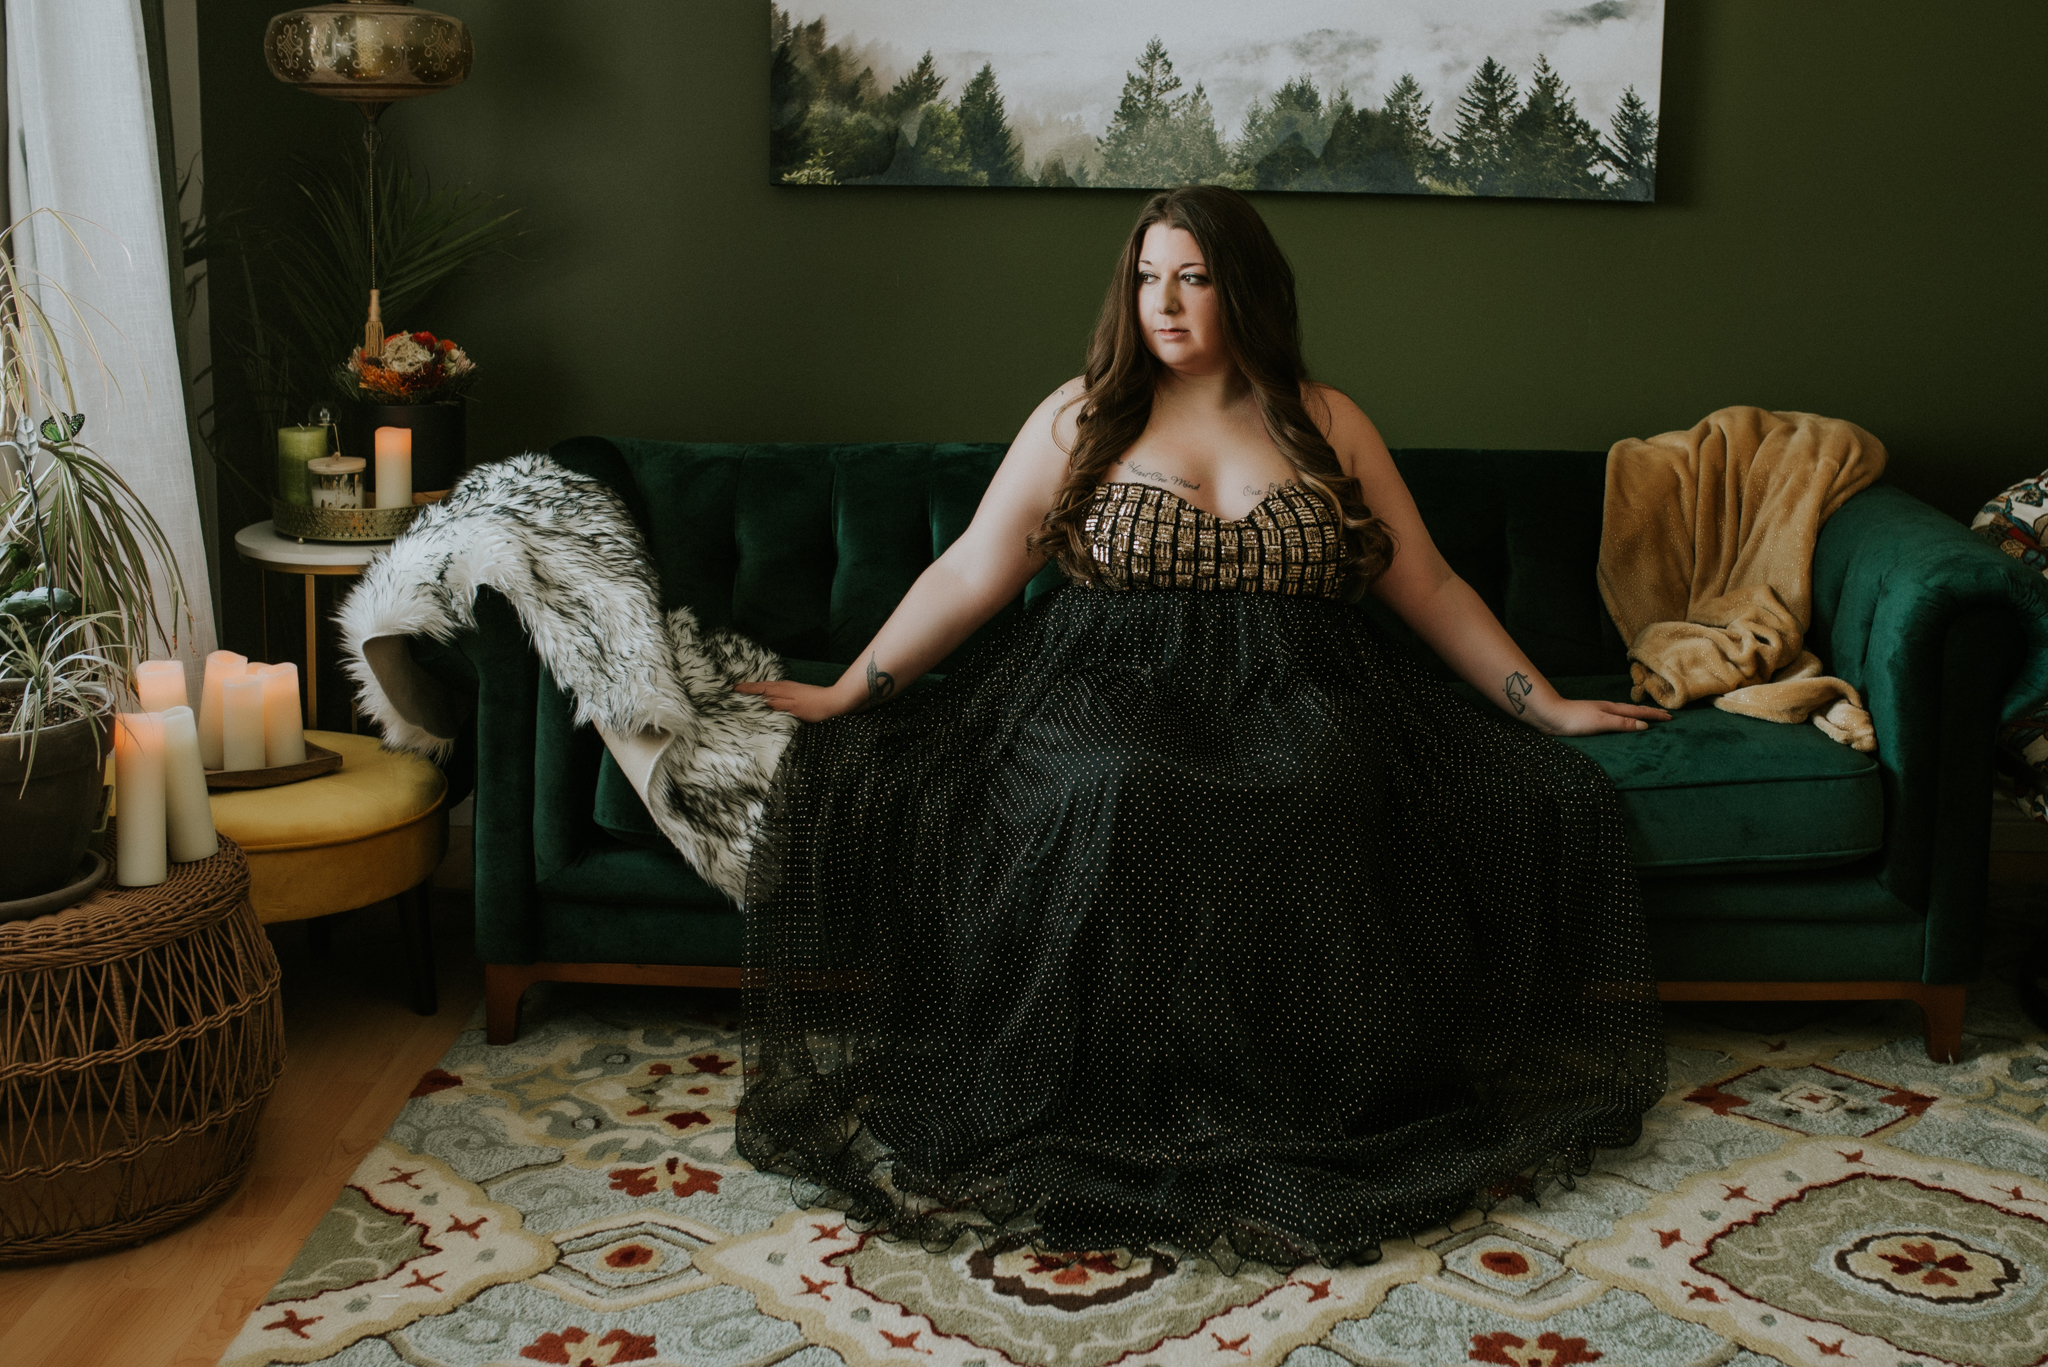 Artist Shannon Smith, Calgary Photographer, Be your own kind of beautiful, portraits, boudoir,